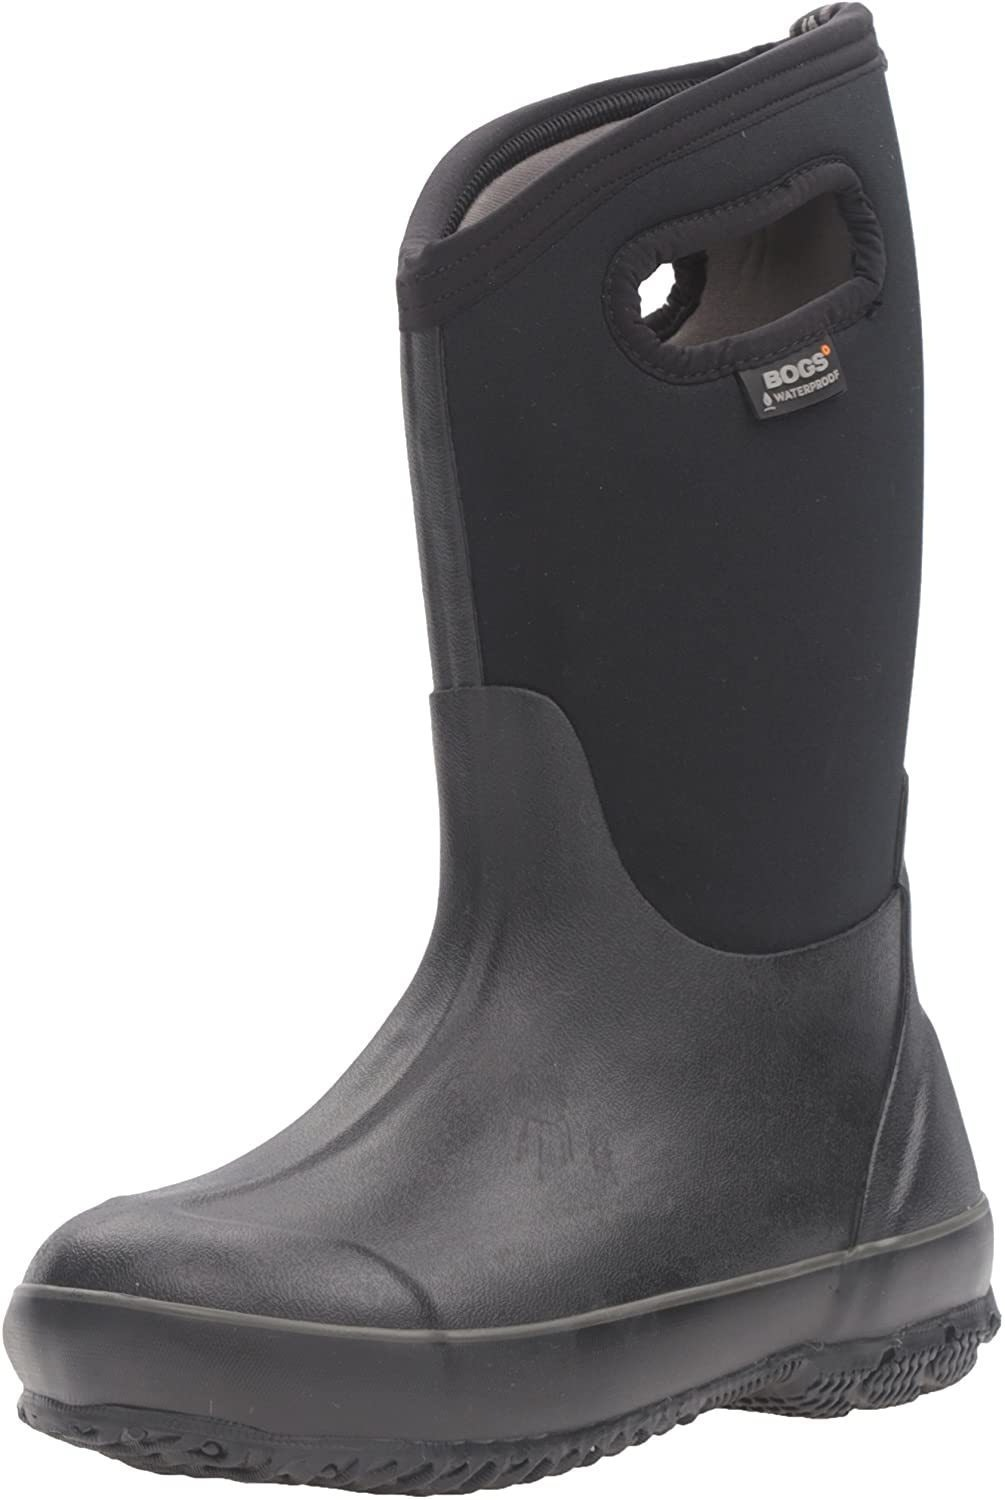 Bogs Insulated Waterproof Boot